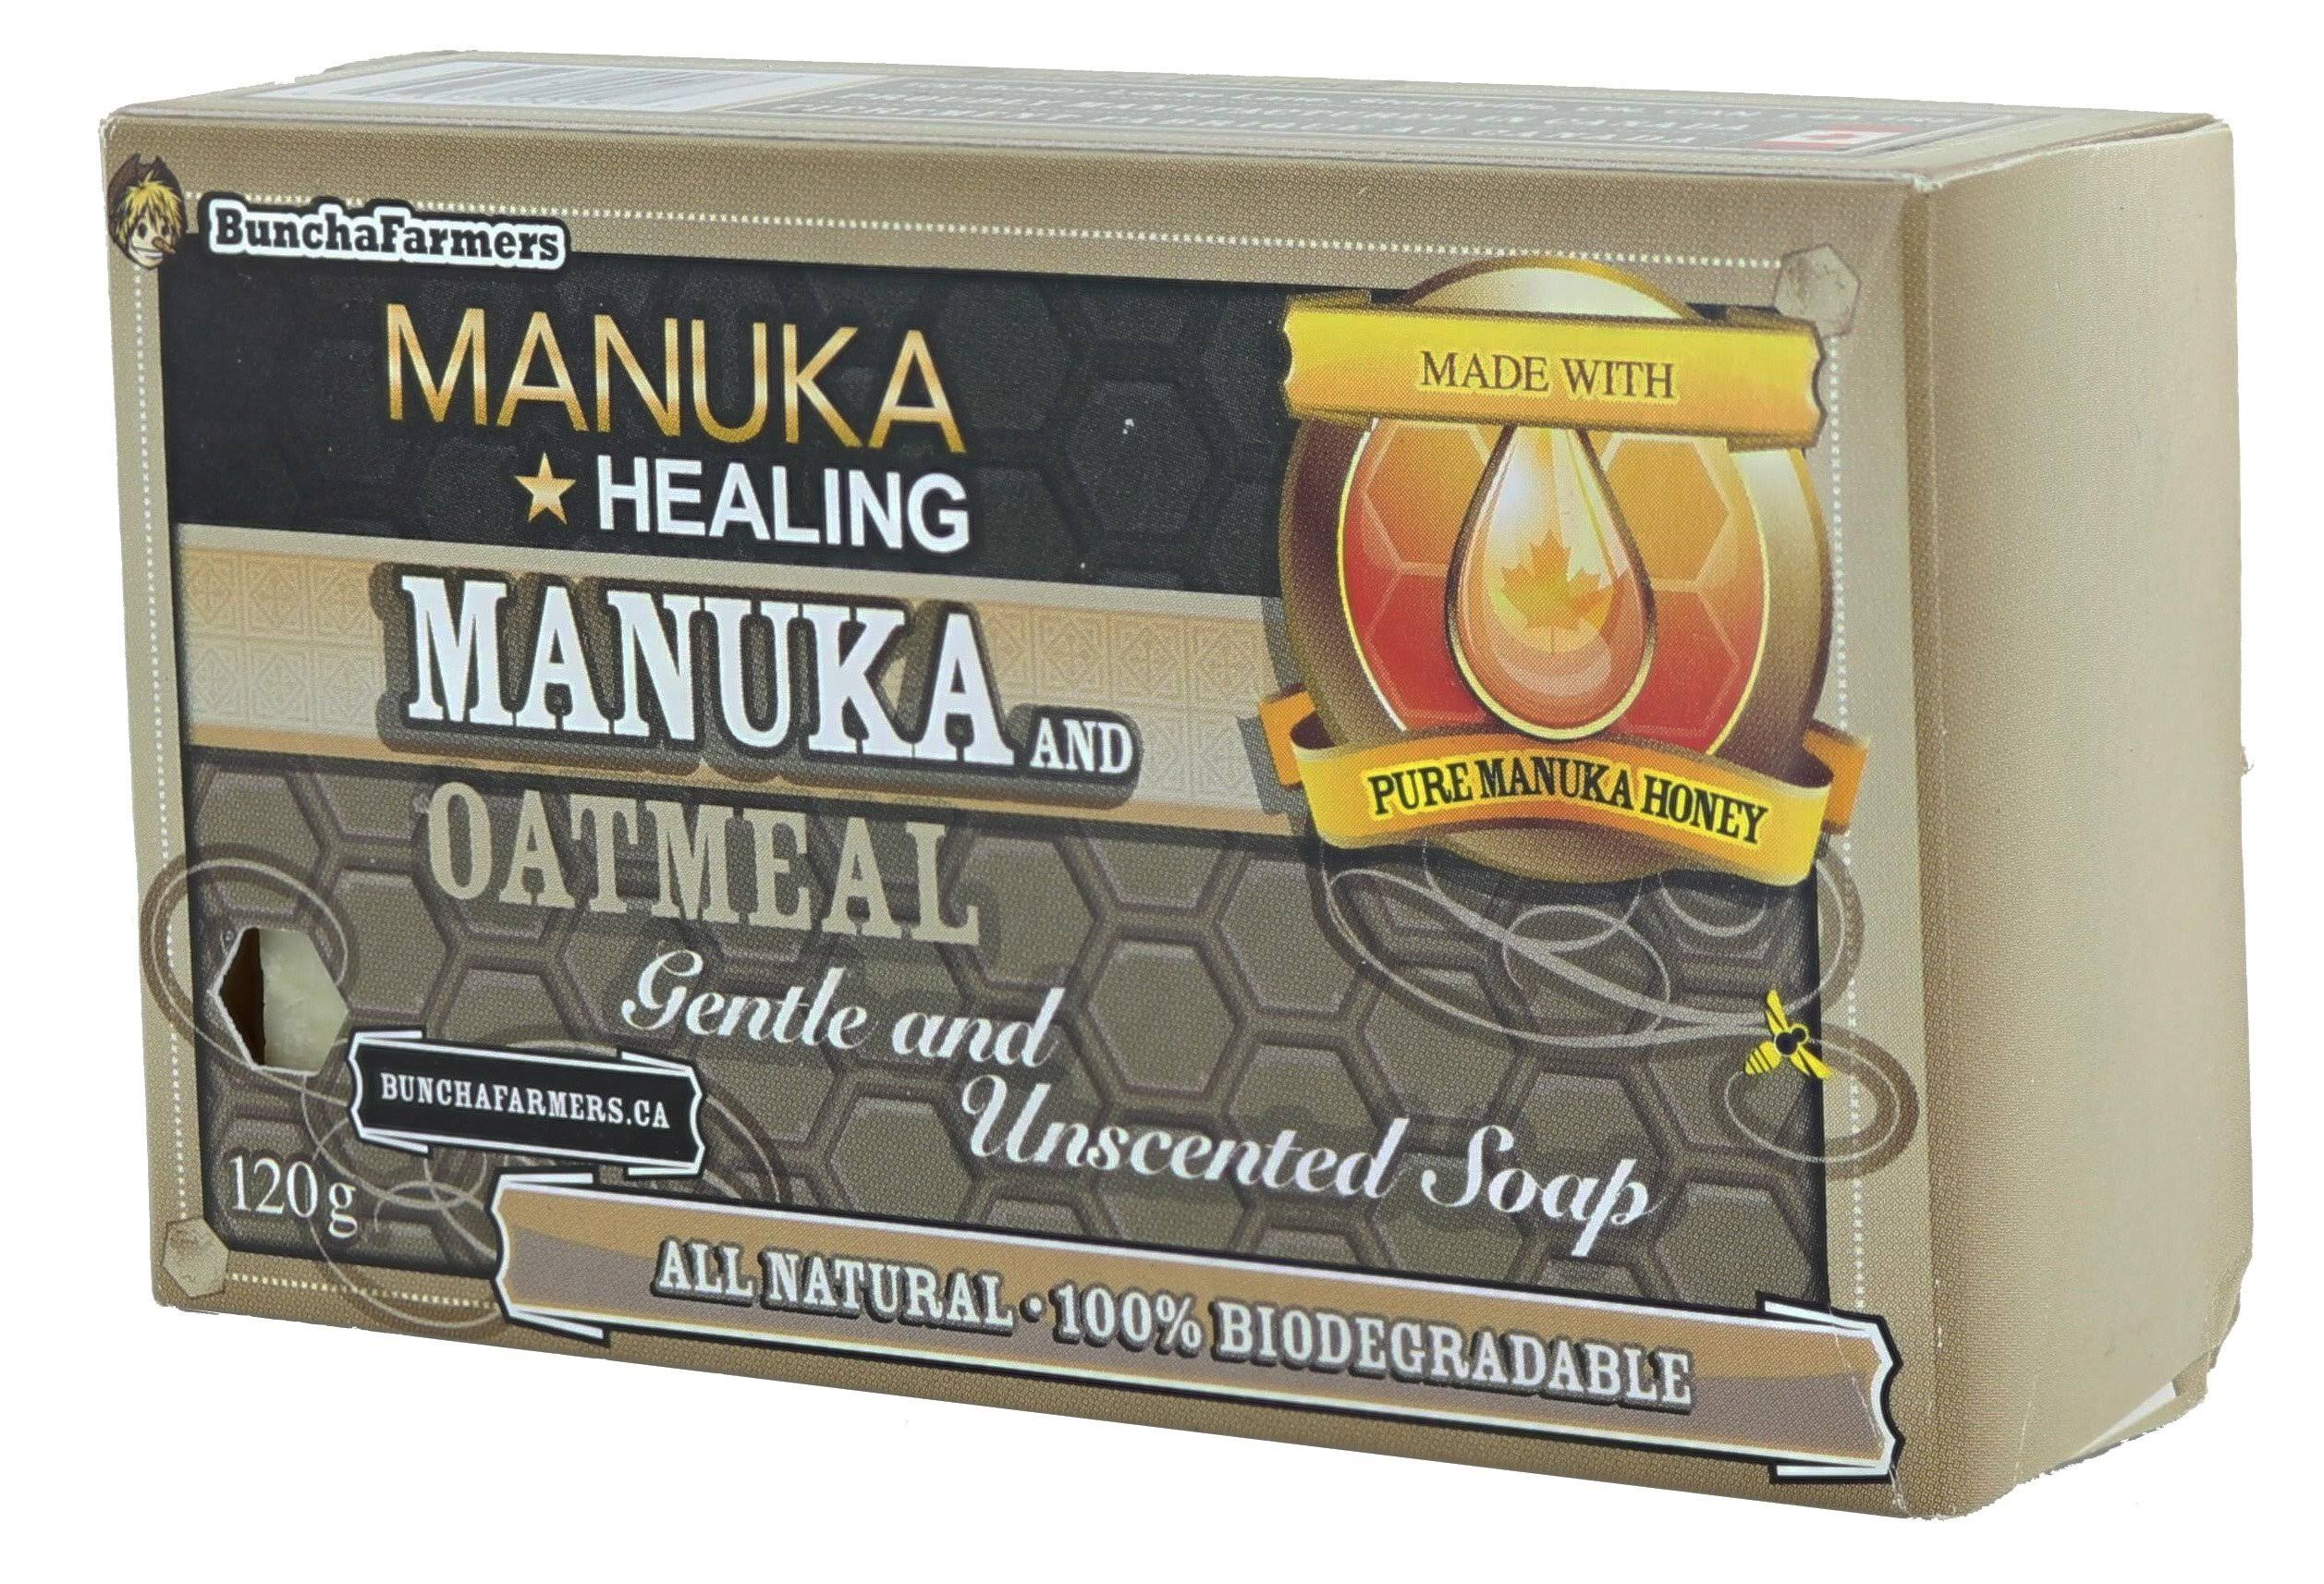 All Natural Oatmeal & Manuka Honey Soap 4oz